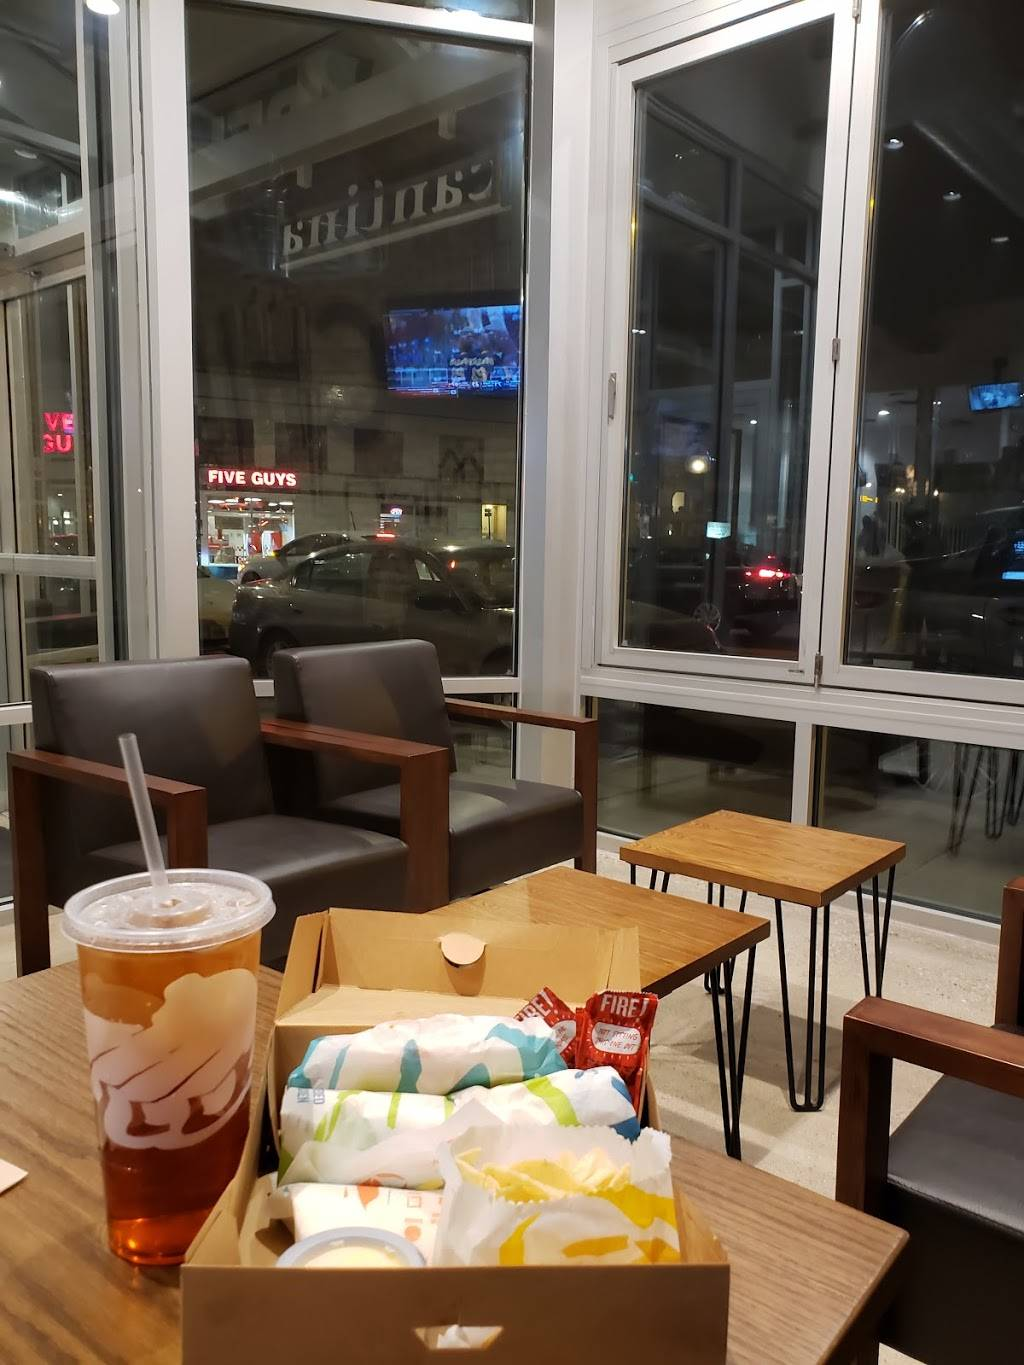 Taco Bell Cantina | restaurant | 2407 N Clark St, Chicago, IL 60614, USA | 7732374661 OR +1 773-237-4661